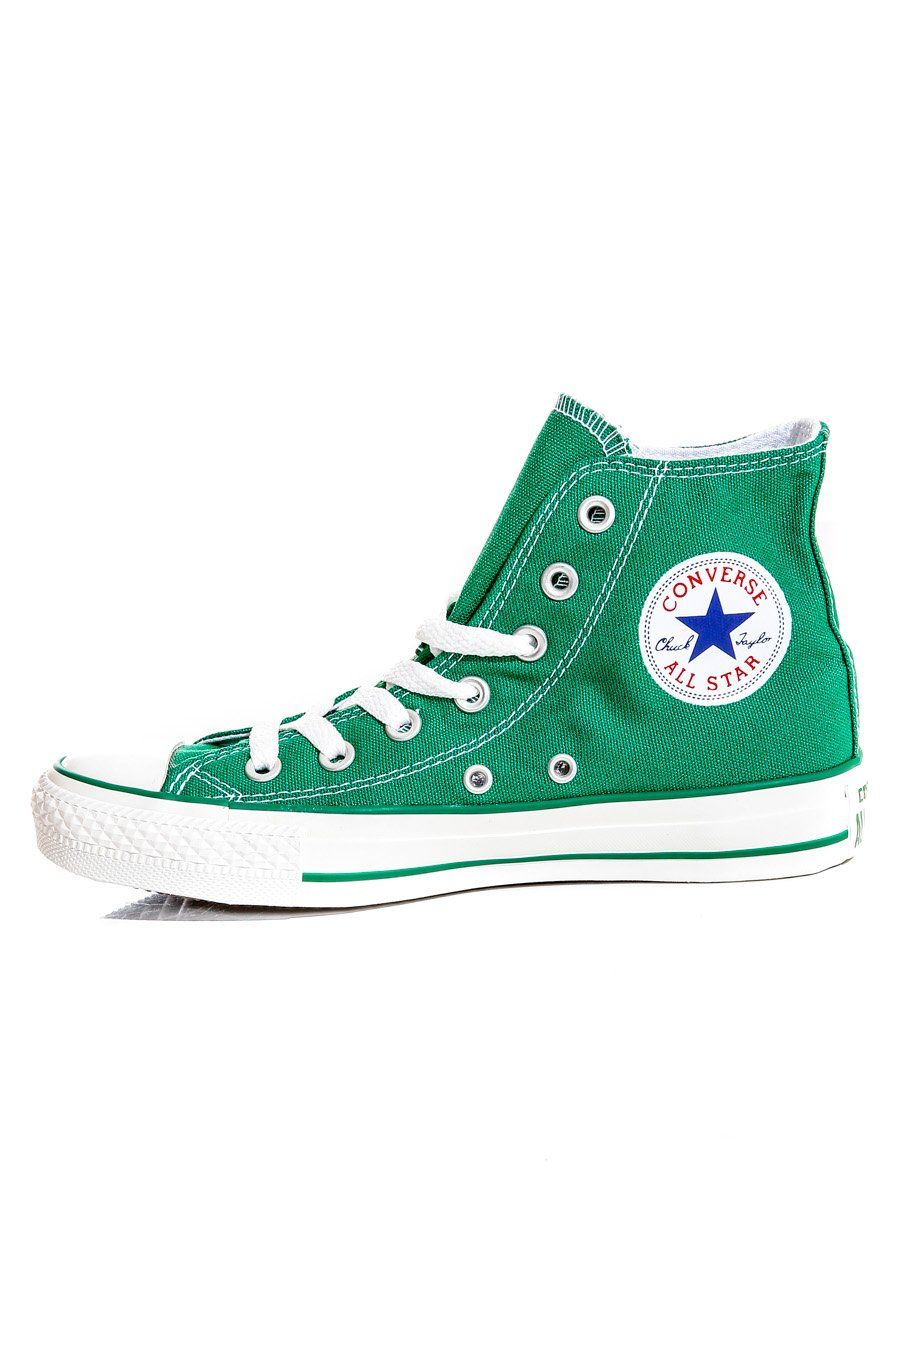 36 All Green Star Taille Montante Celtic Converse jc35S4LqAR